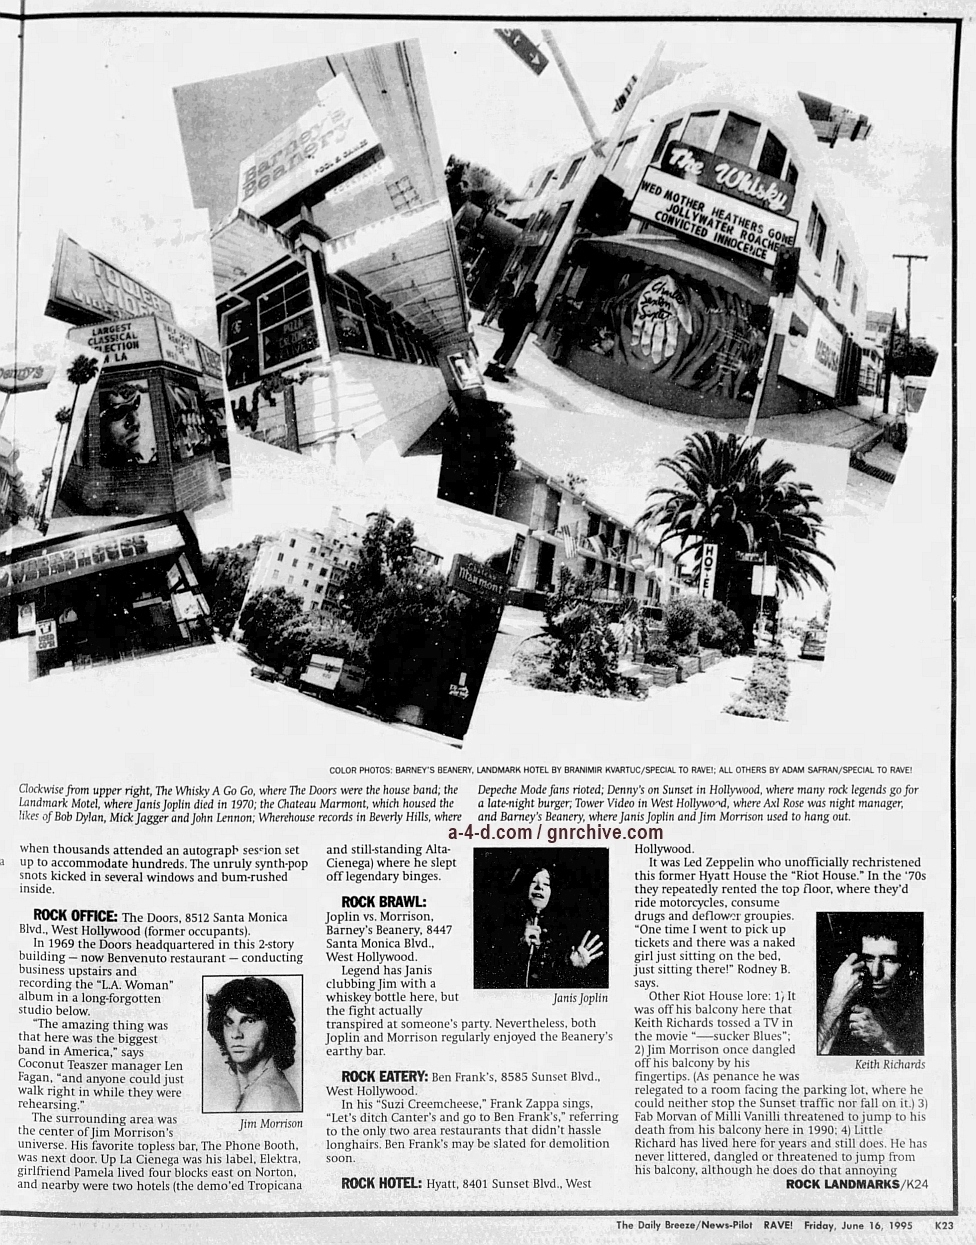 1995.06.16 - News Pilot - L.A.'s Landmarks of Rock 1995_053